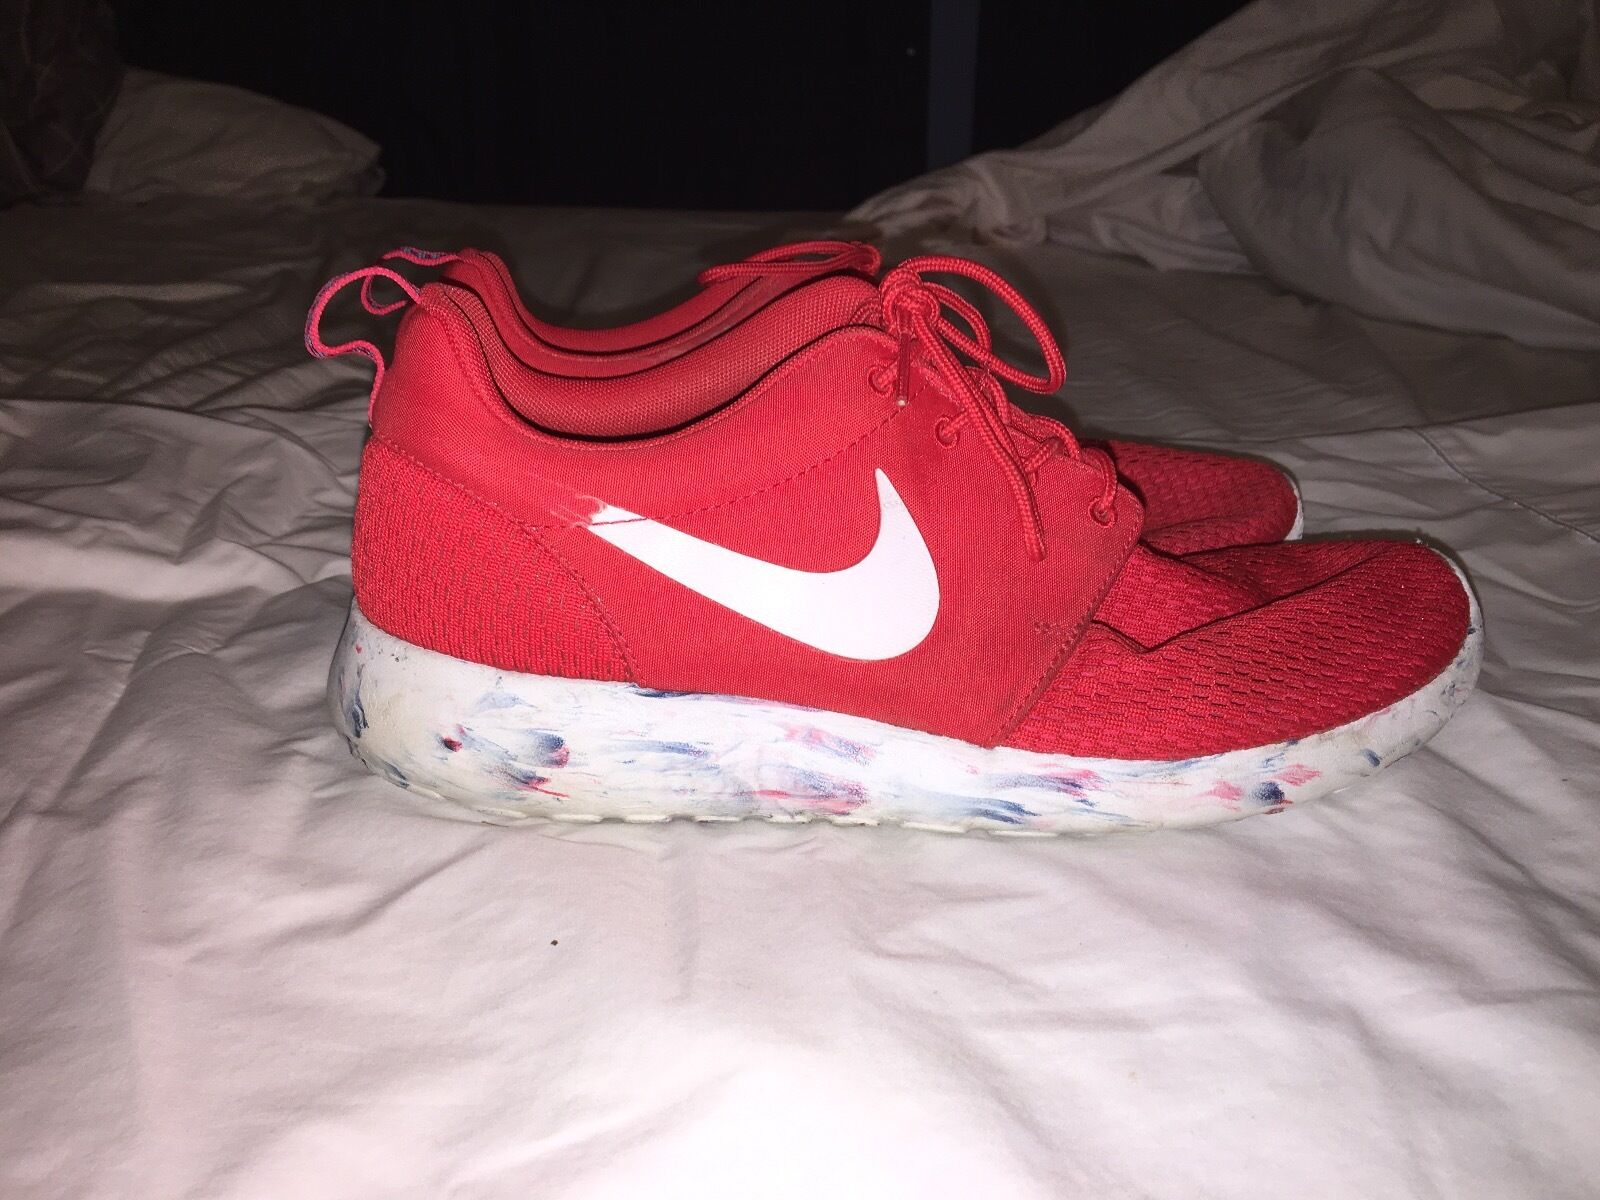 Nike Rosherun red w/ blue/red marbled sole best-selling model of the brand